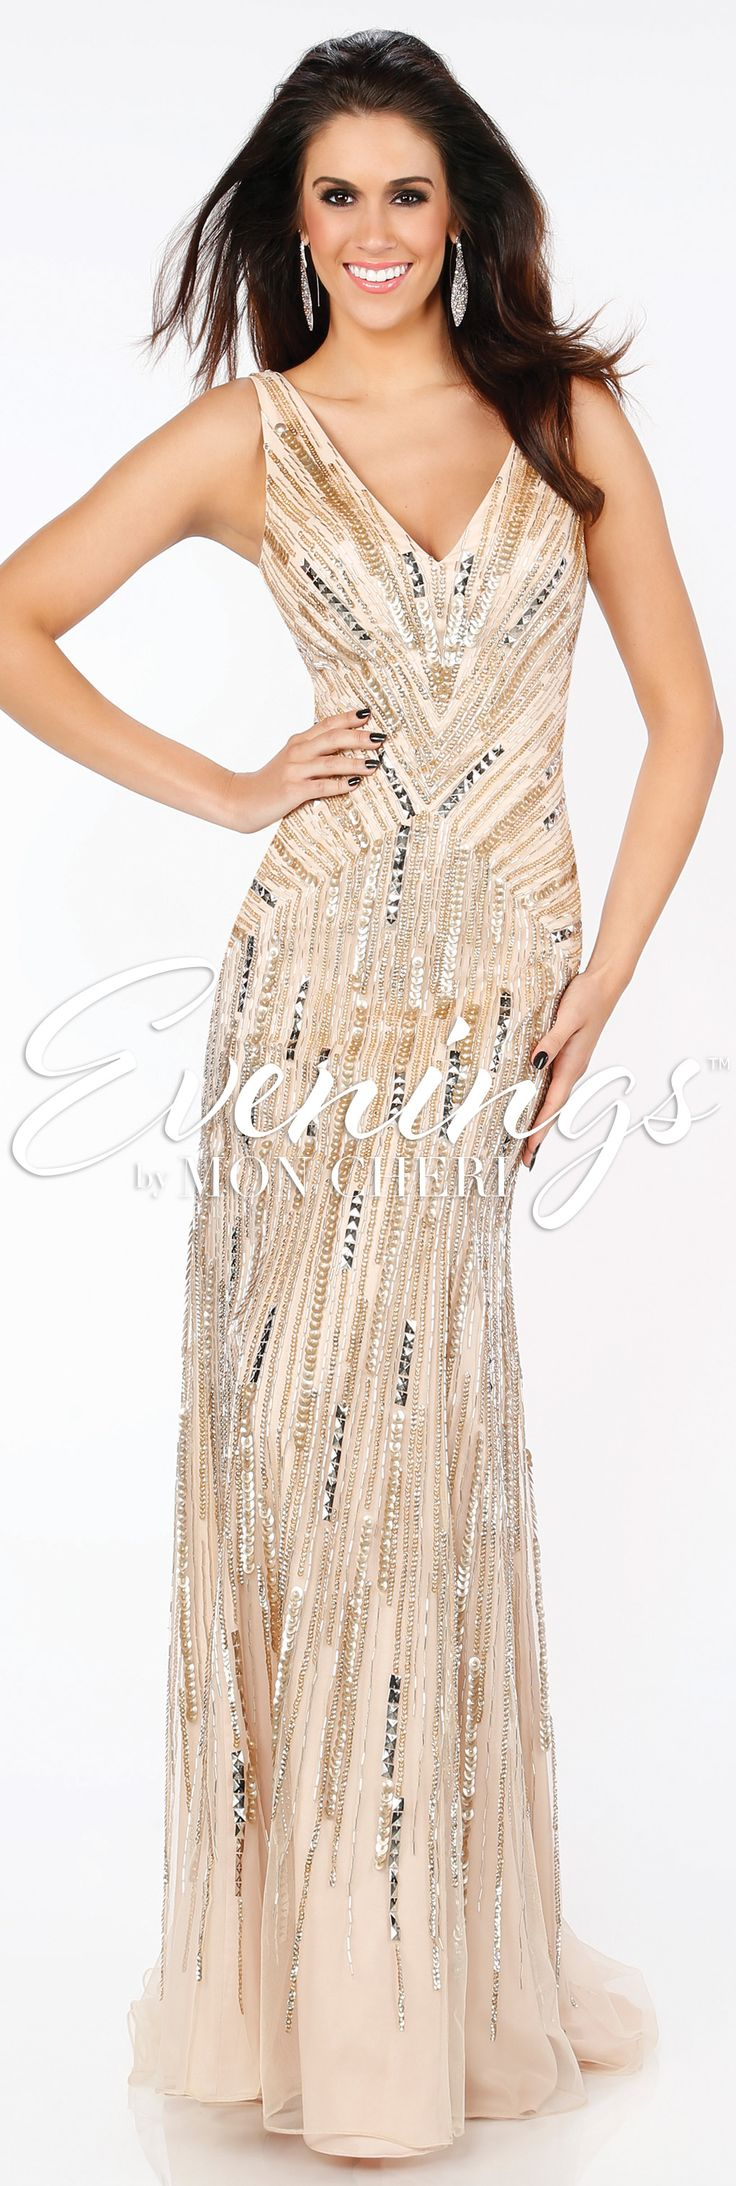 Evenings by Mon Cheri Spring 2016 - Style No. 11652 #promdresses